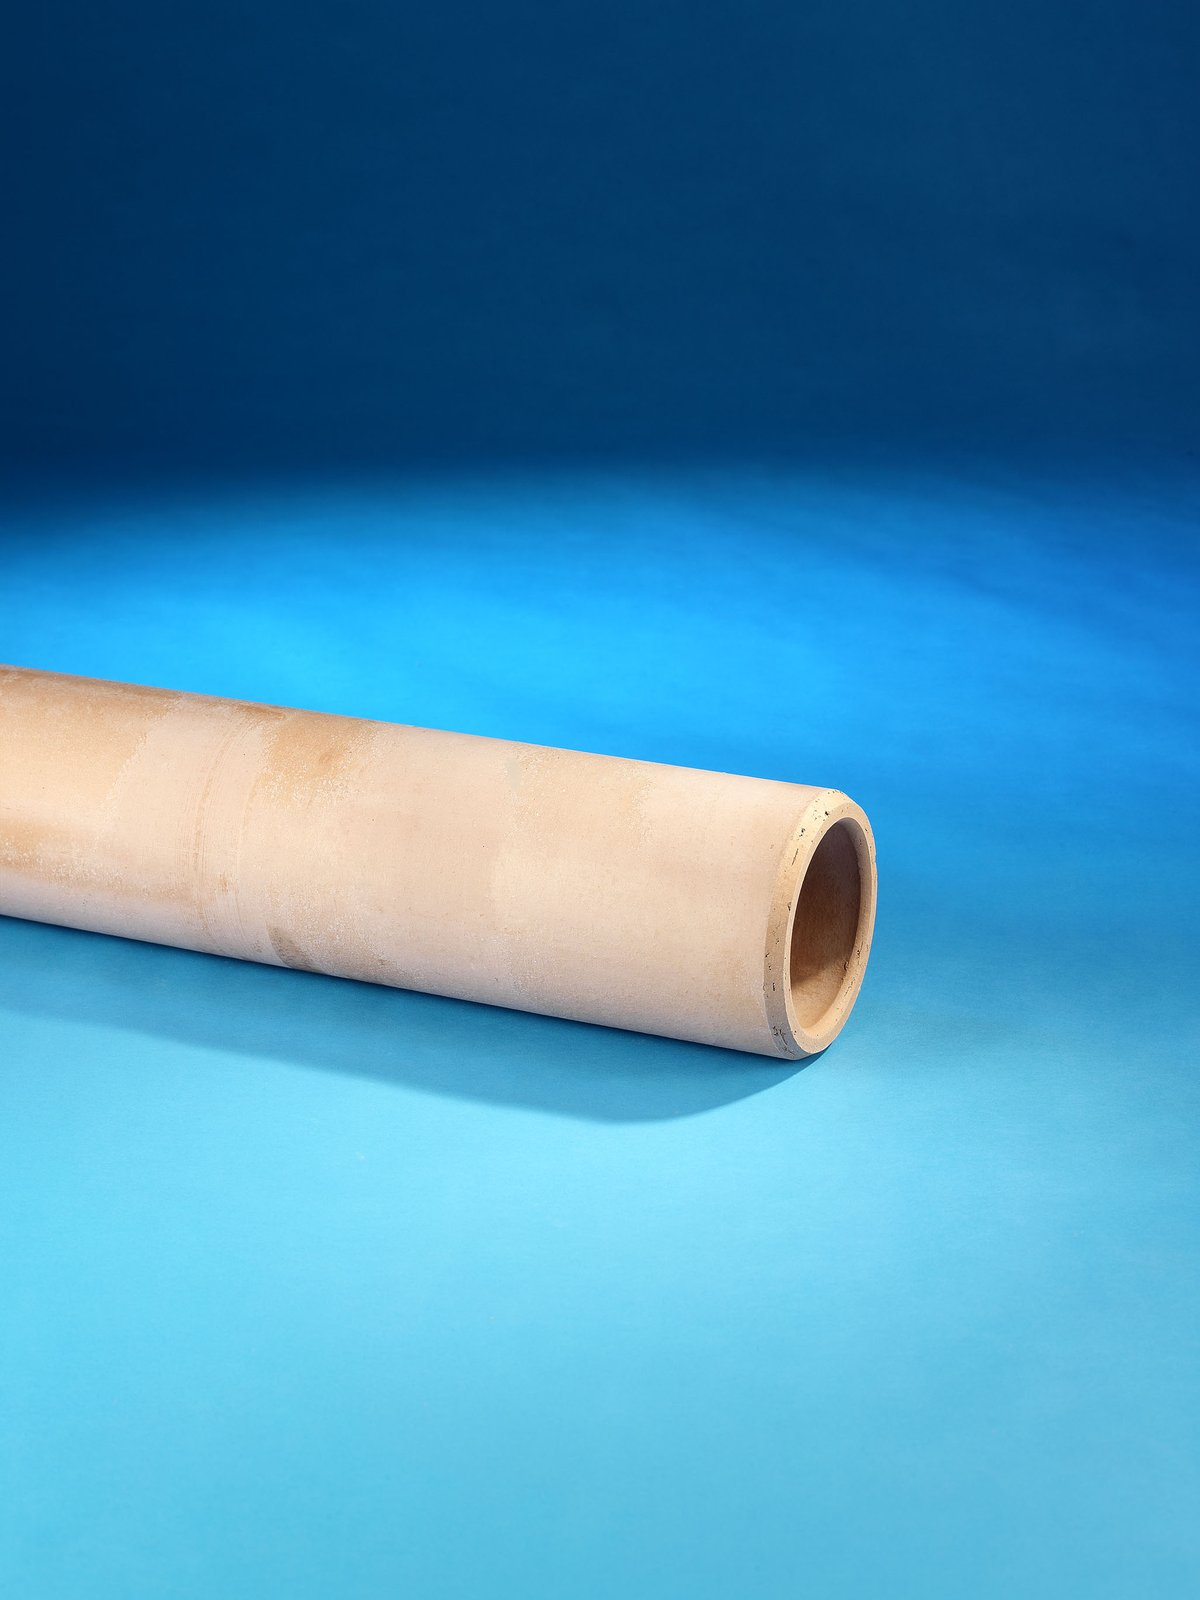 150mm Pipe 1.75m